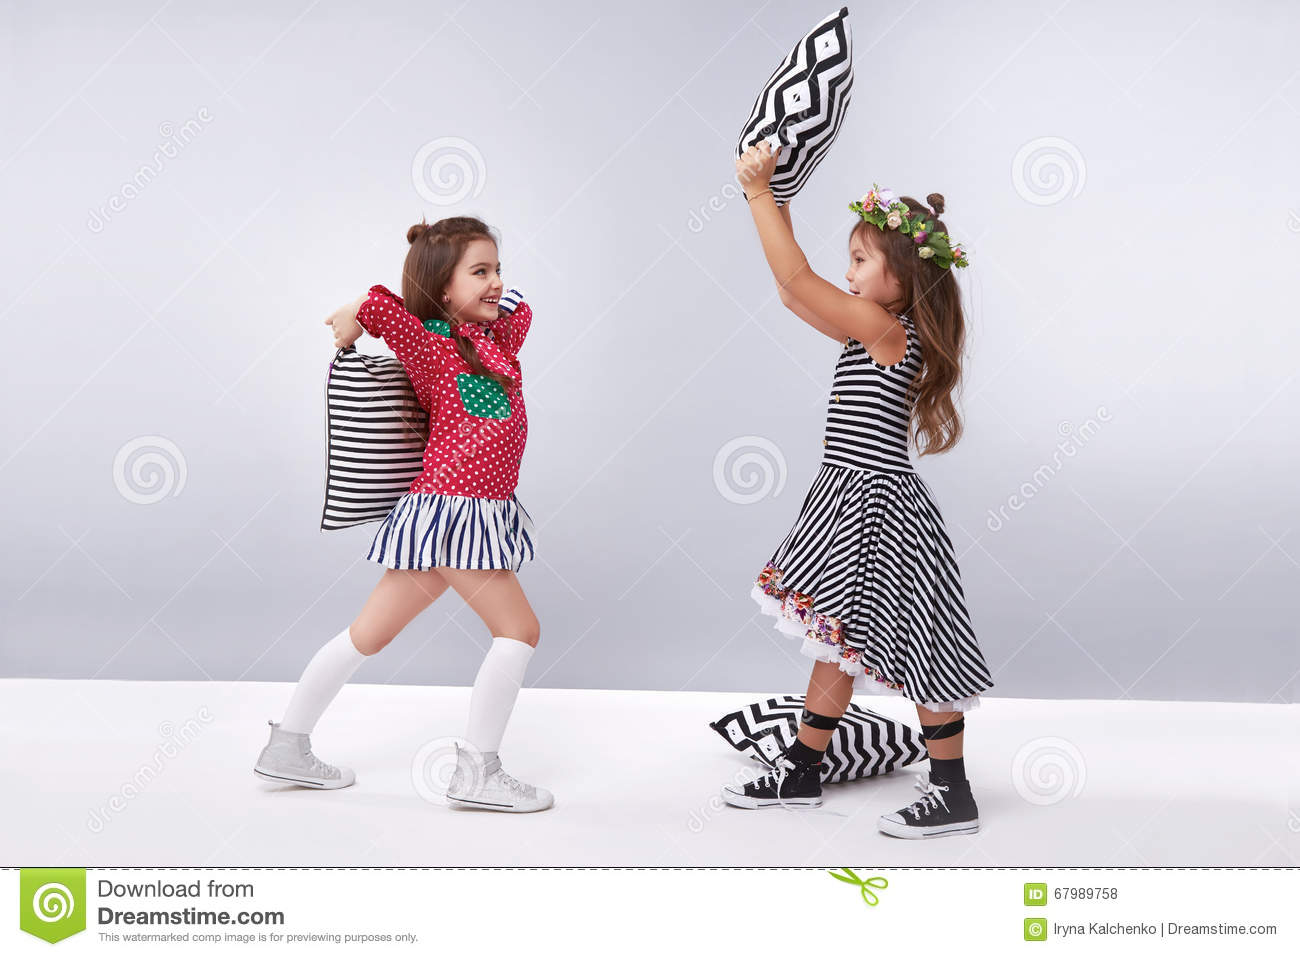 Dress Girl Clothing Small Collection Cute Stock Photo Image 67989758